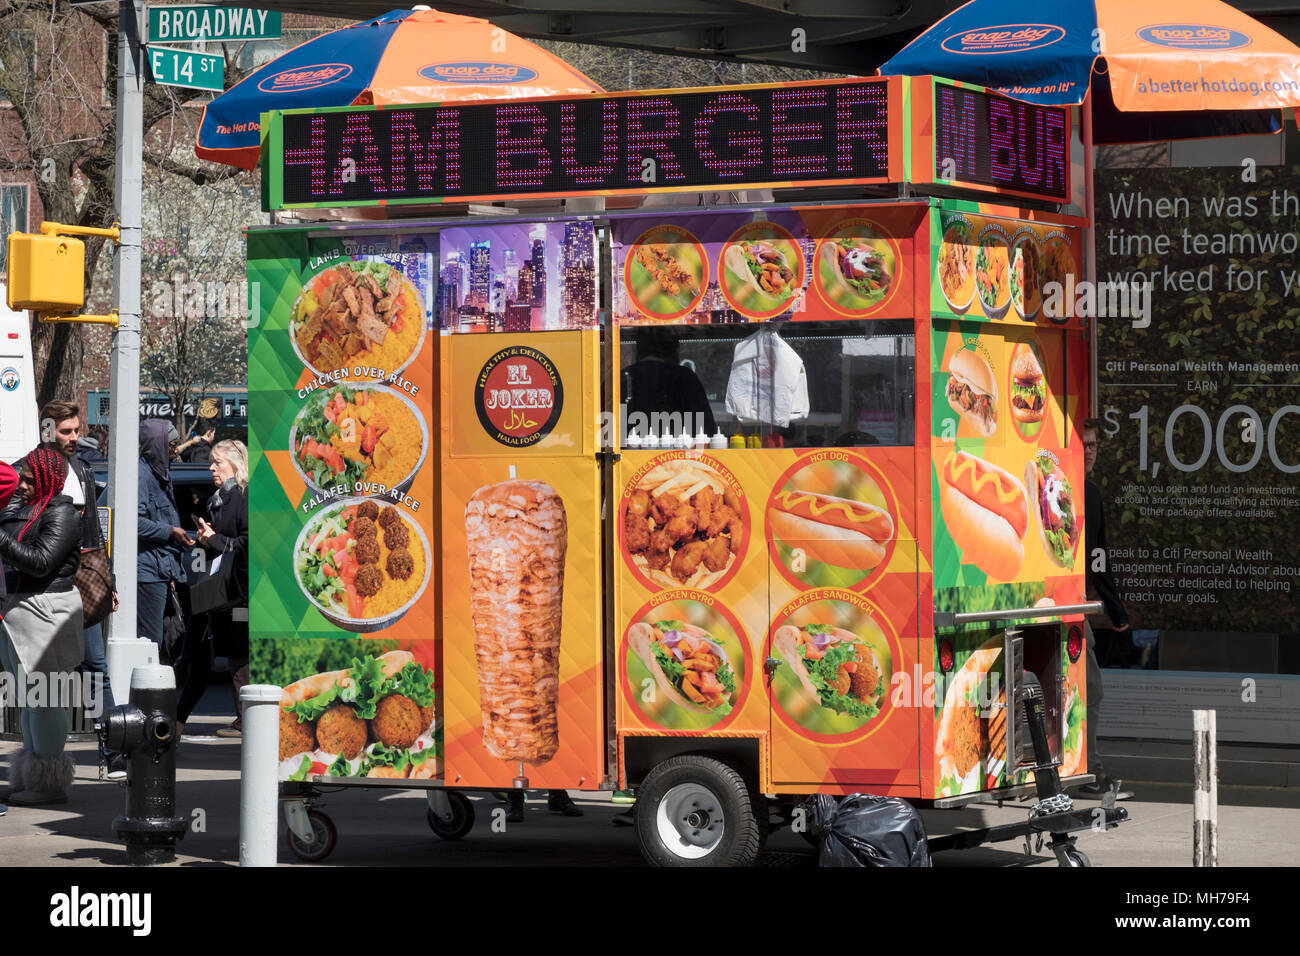 The El Joker Healthy & Delicious Halal food cart on Broadway and East 14th Street in Greenwich Village, Manhattan, New York City. - Stock Image